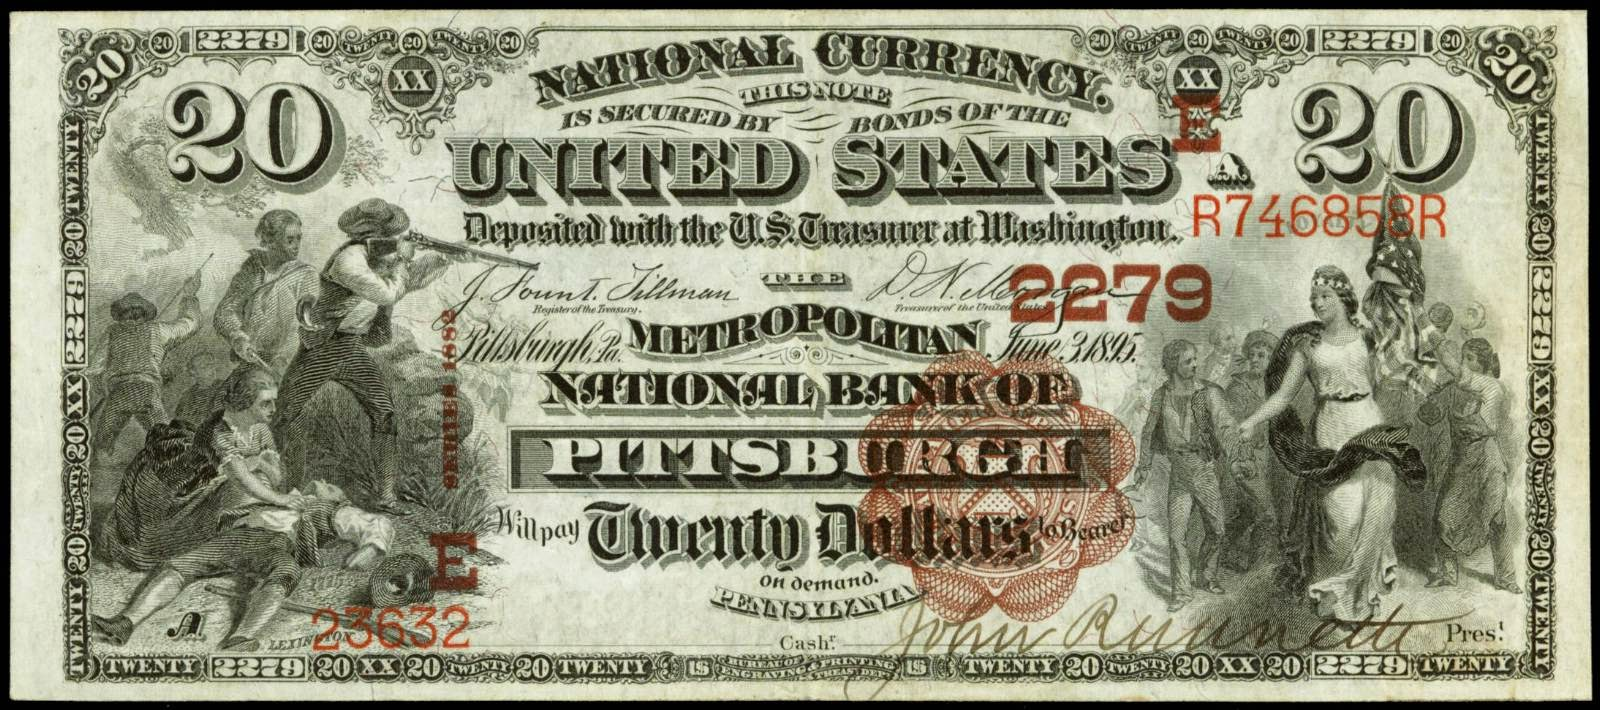 1882 20 Dollar bill National Currency